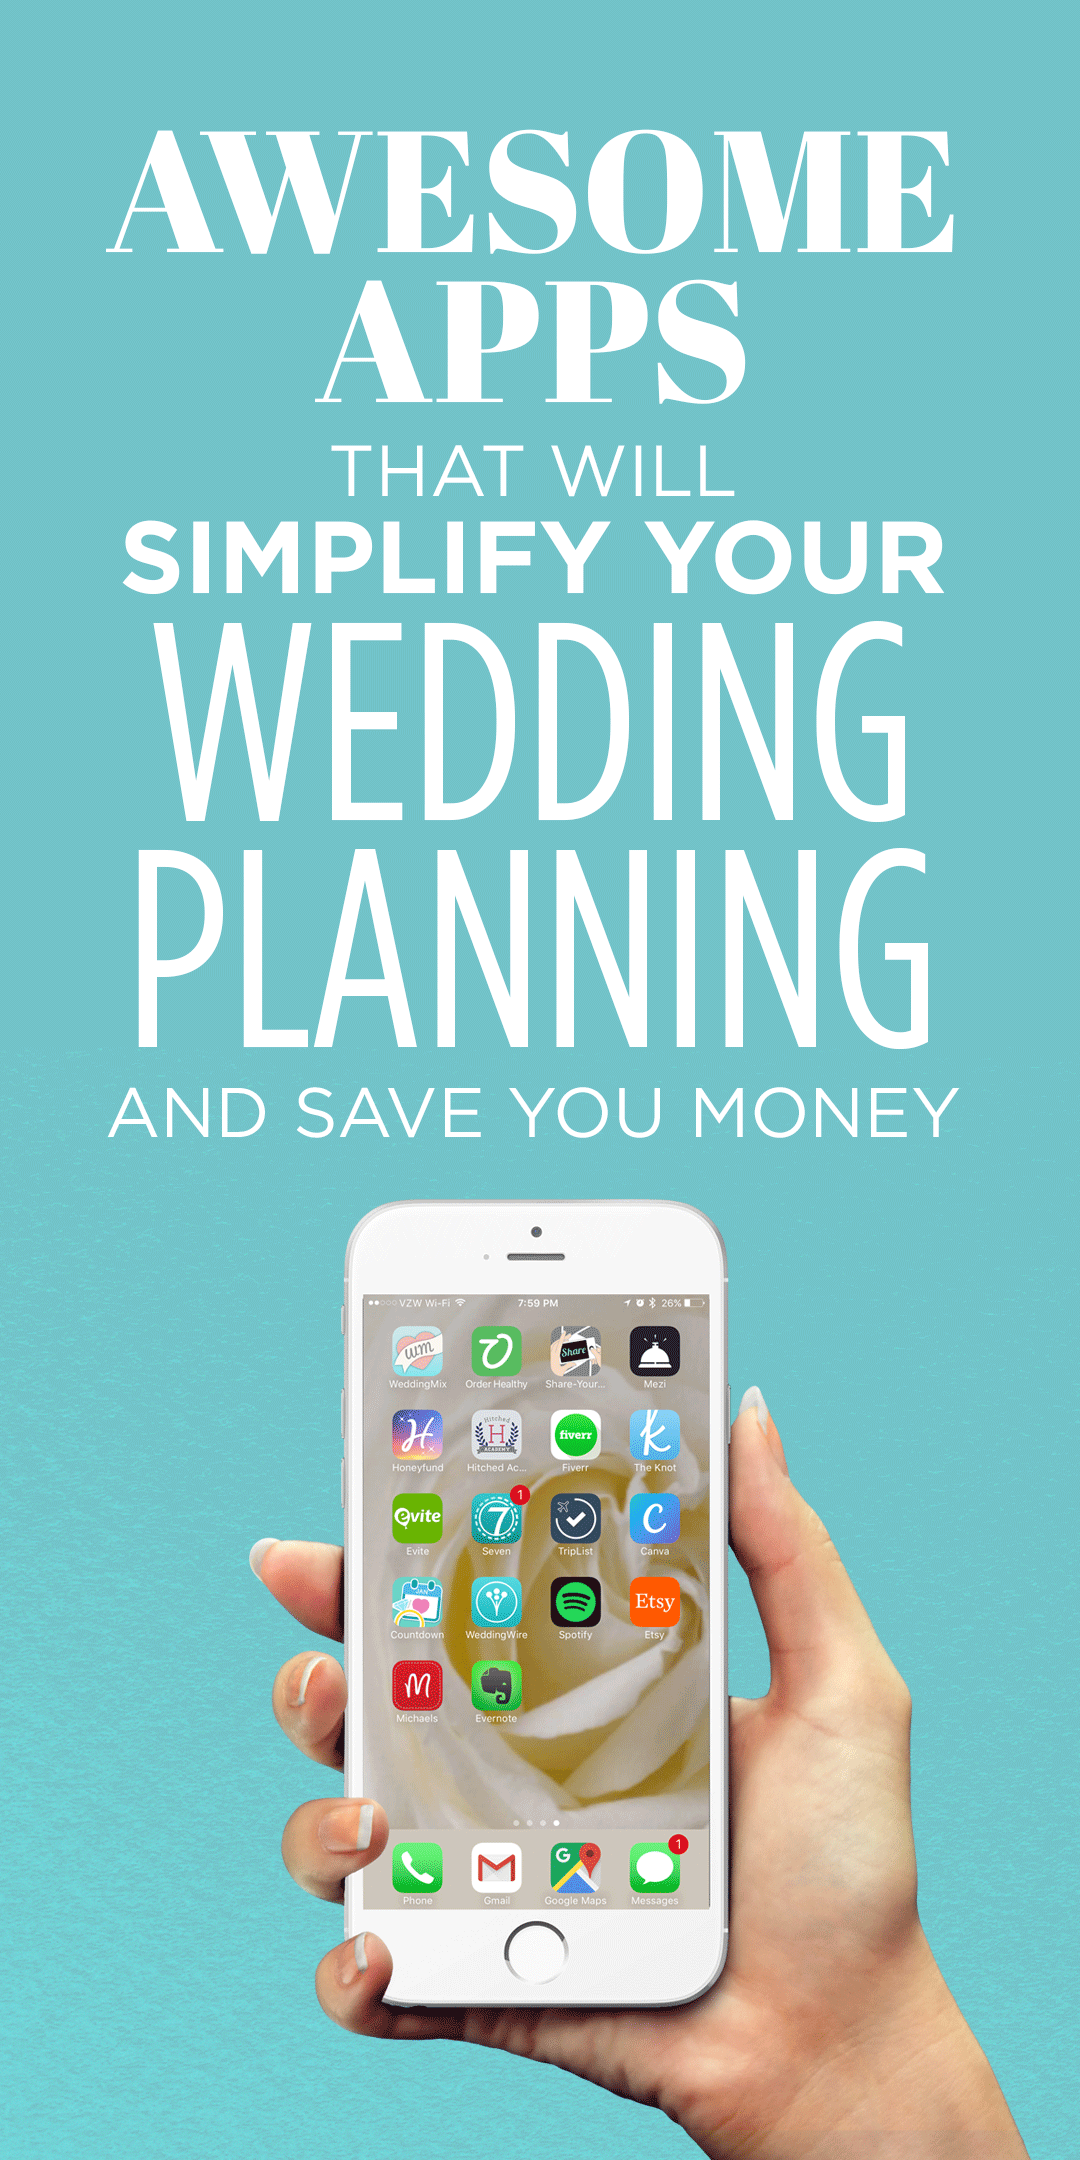 Awesome Wedding Apps You Should Know About Creative wedding